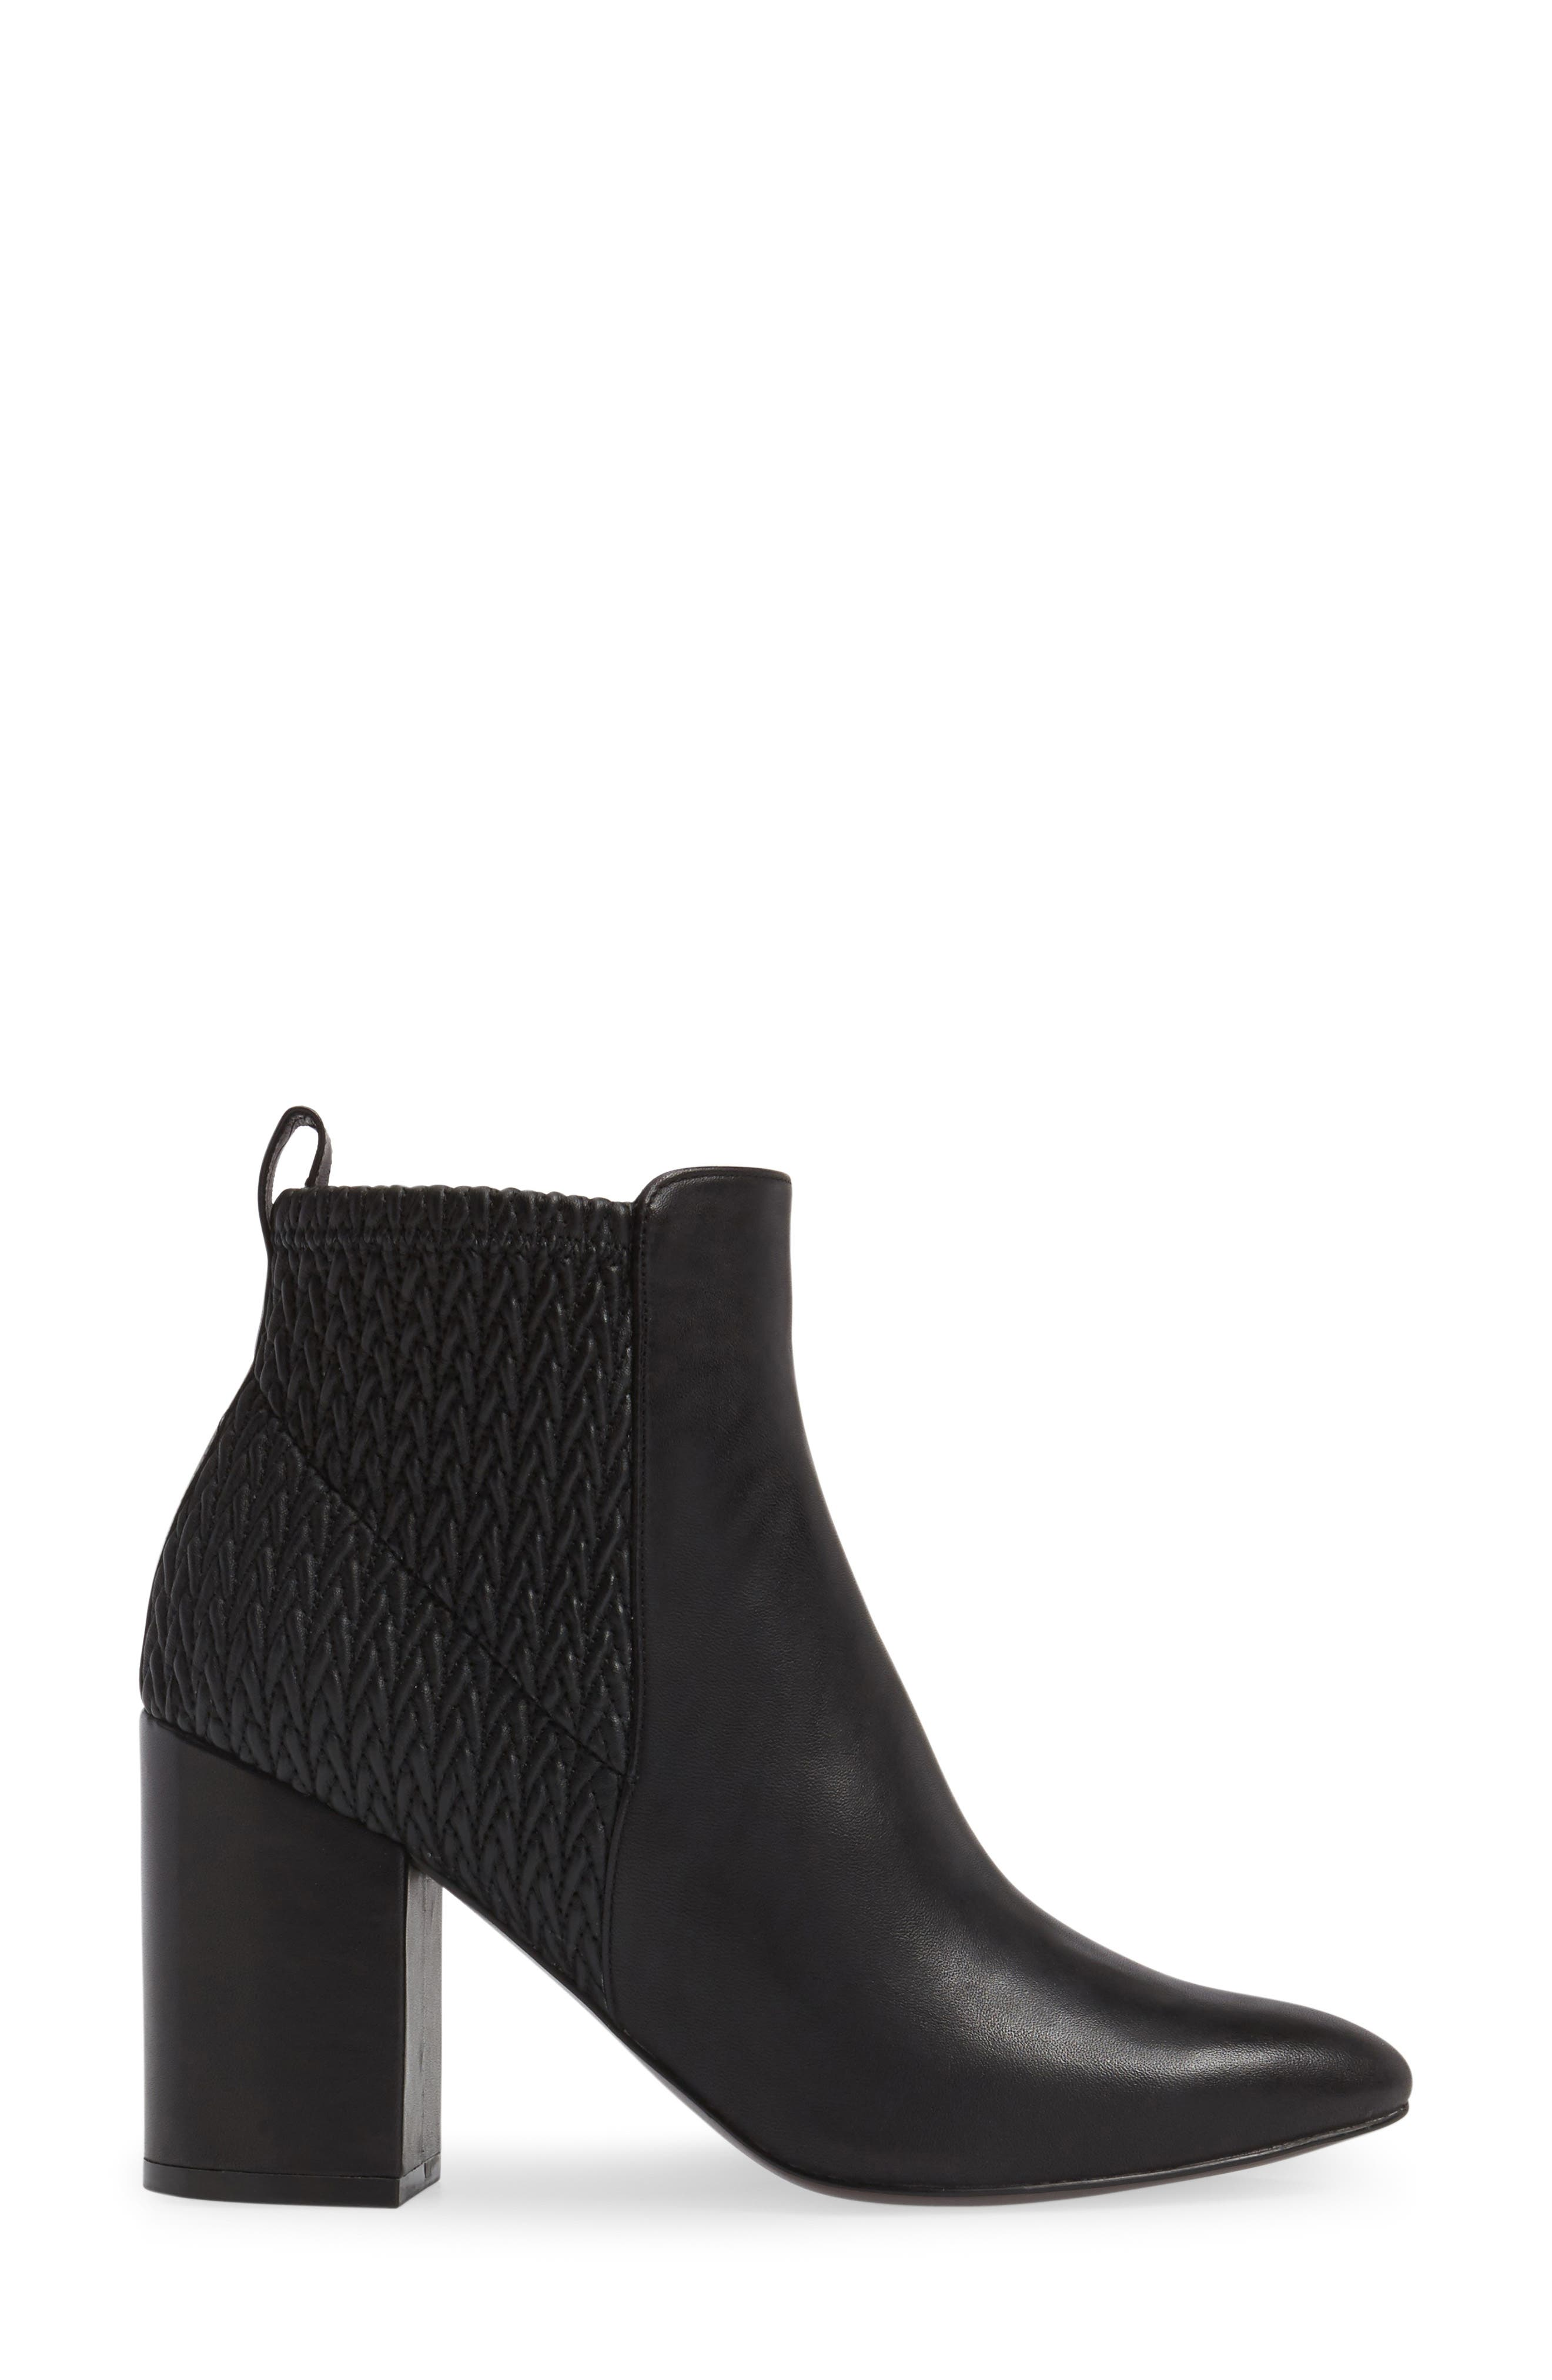 Aylin Bootie,                             Alternate thumbnail 3, color,                             001